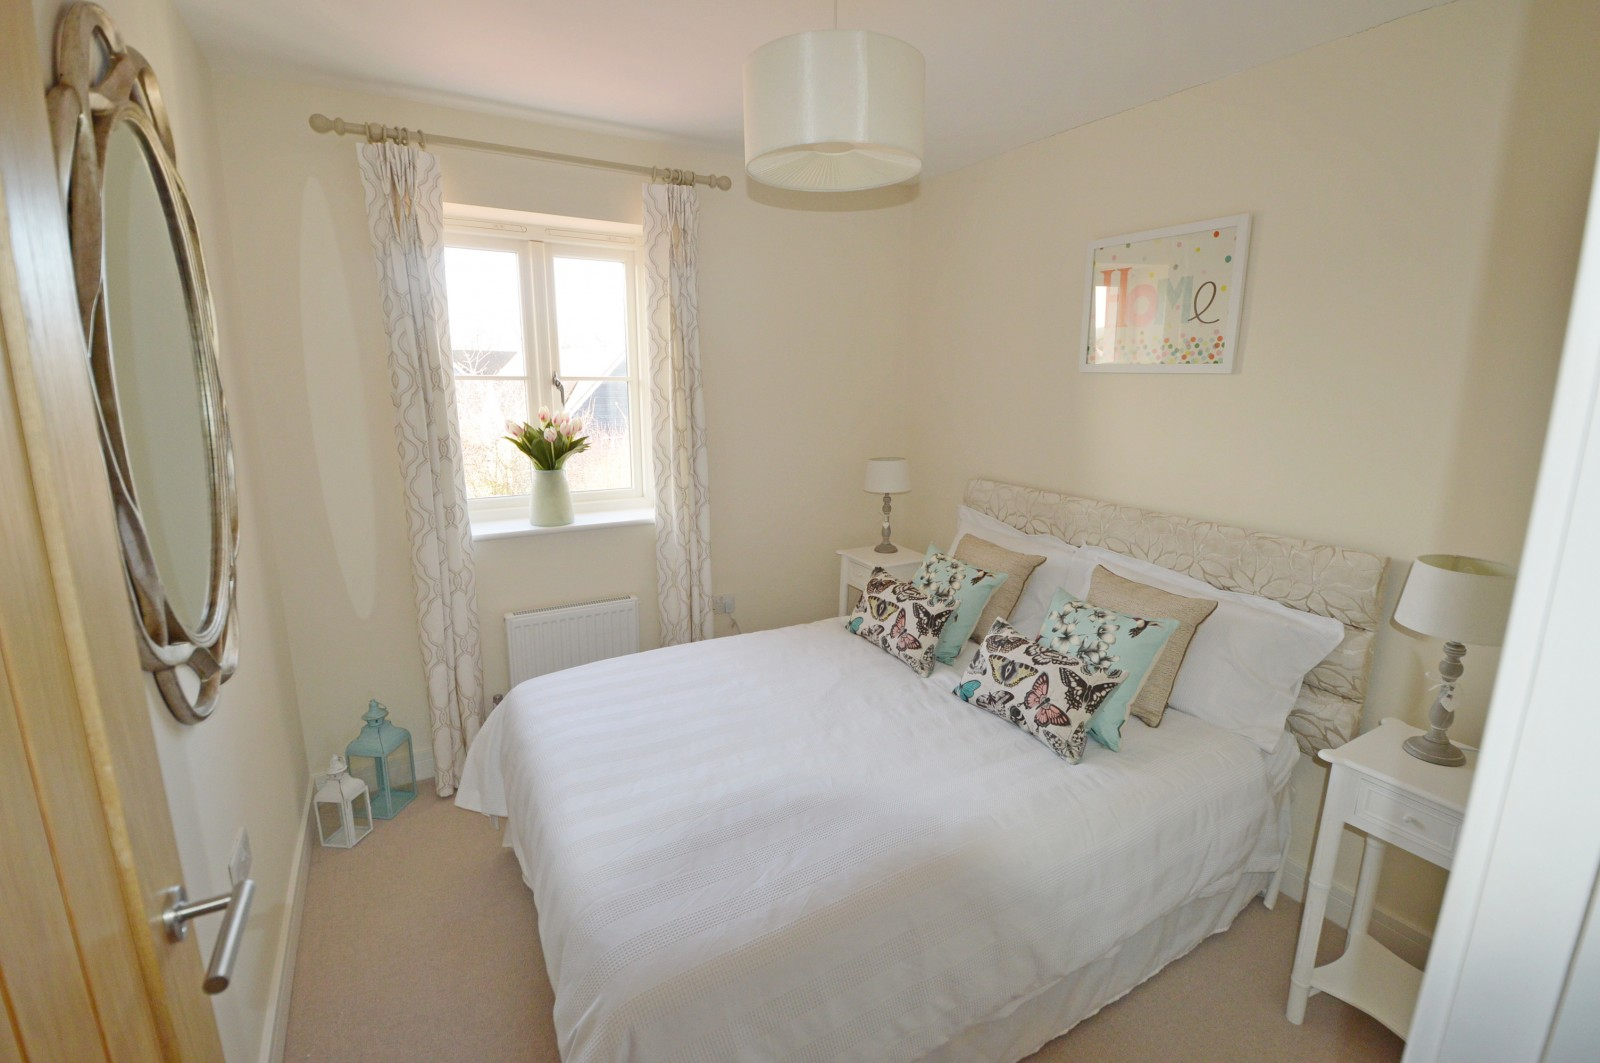 Bedroom 3 Property to let in Ropley